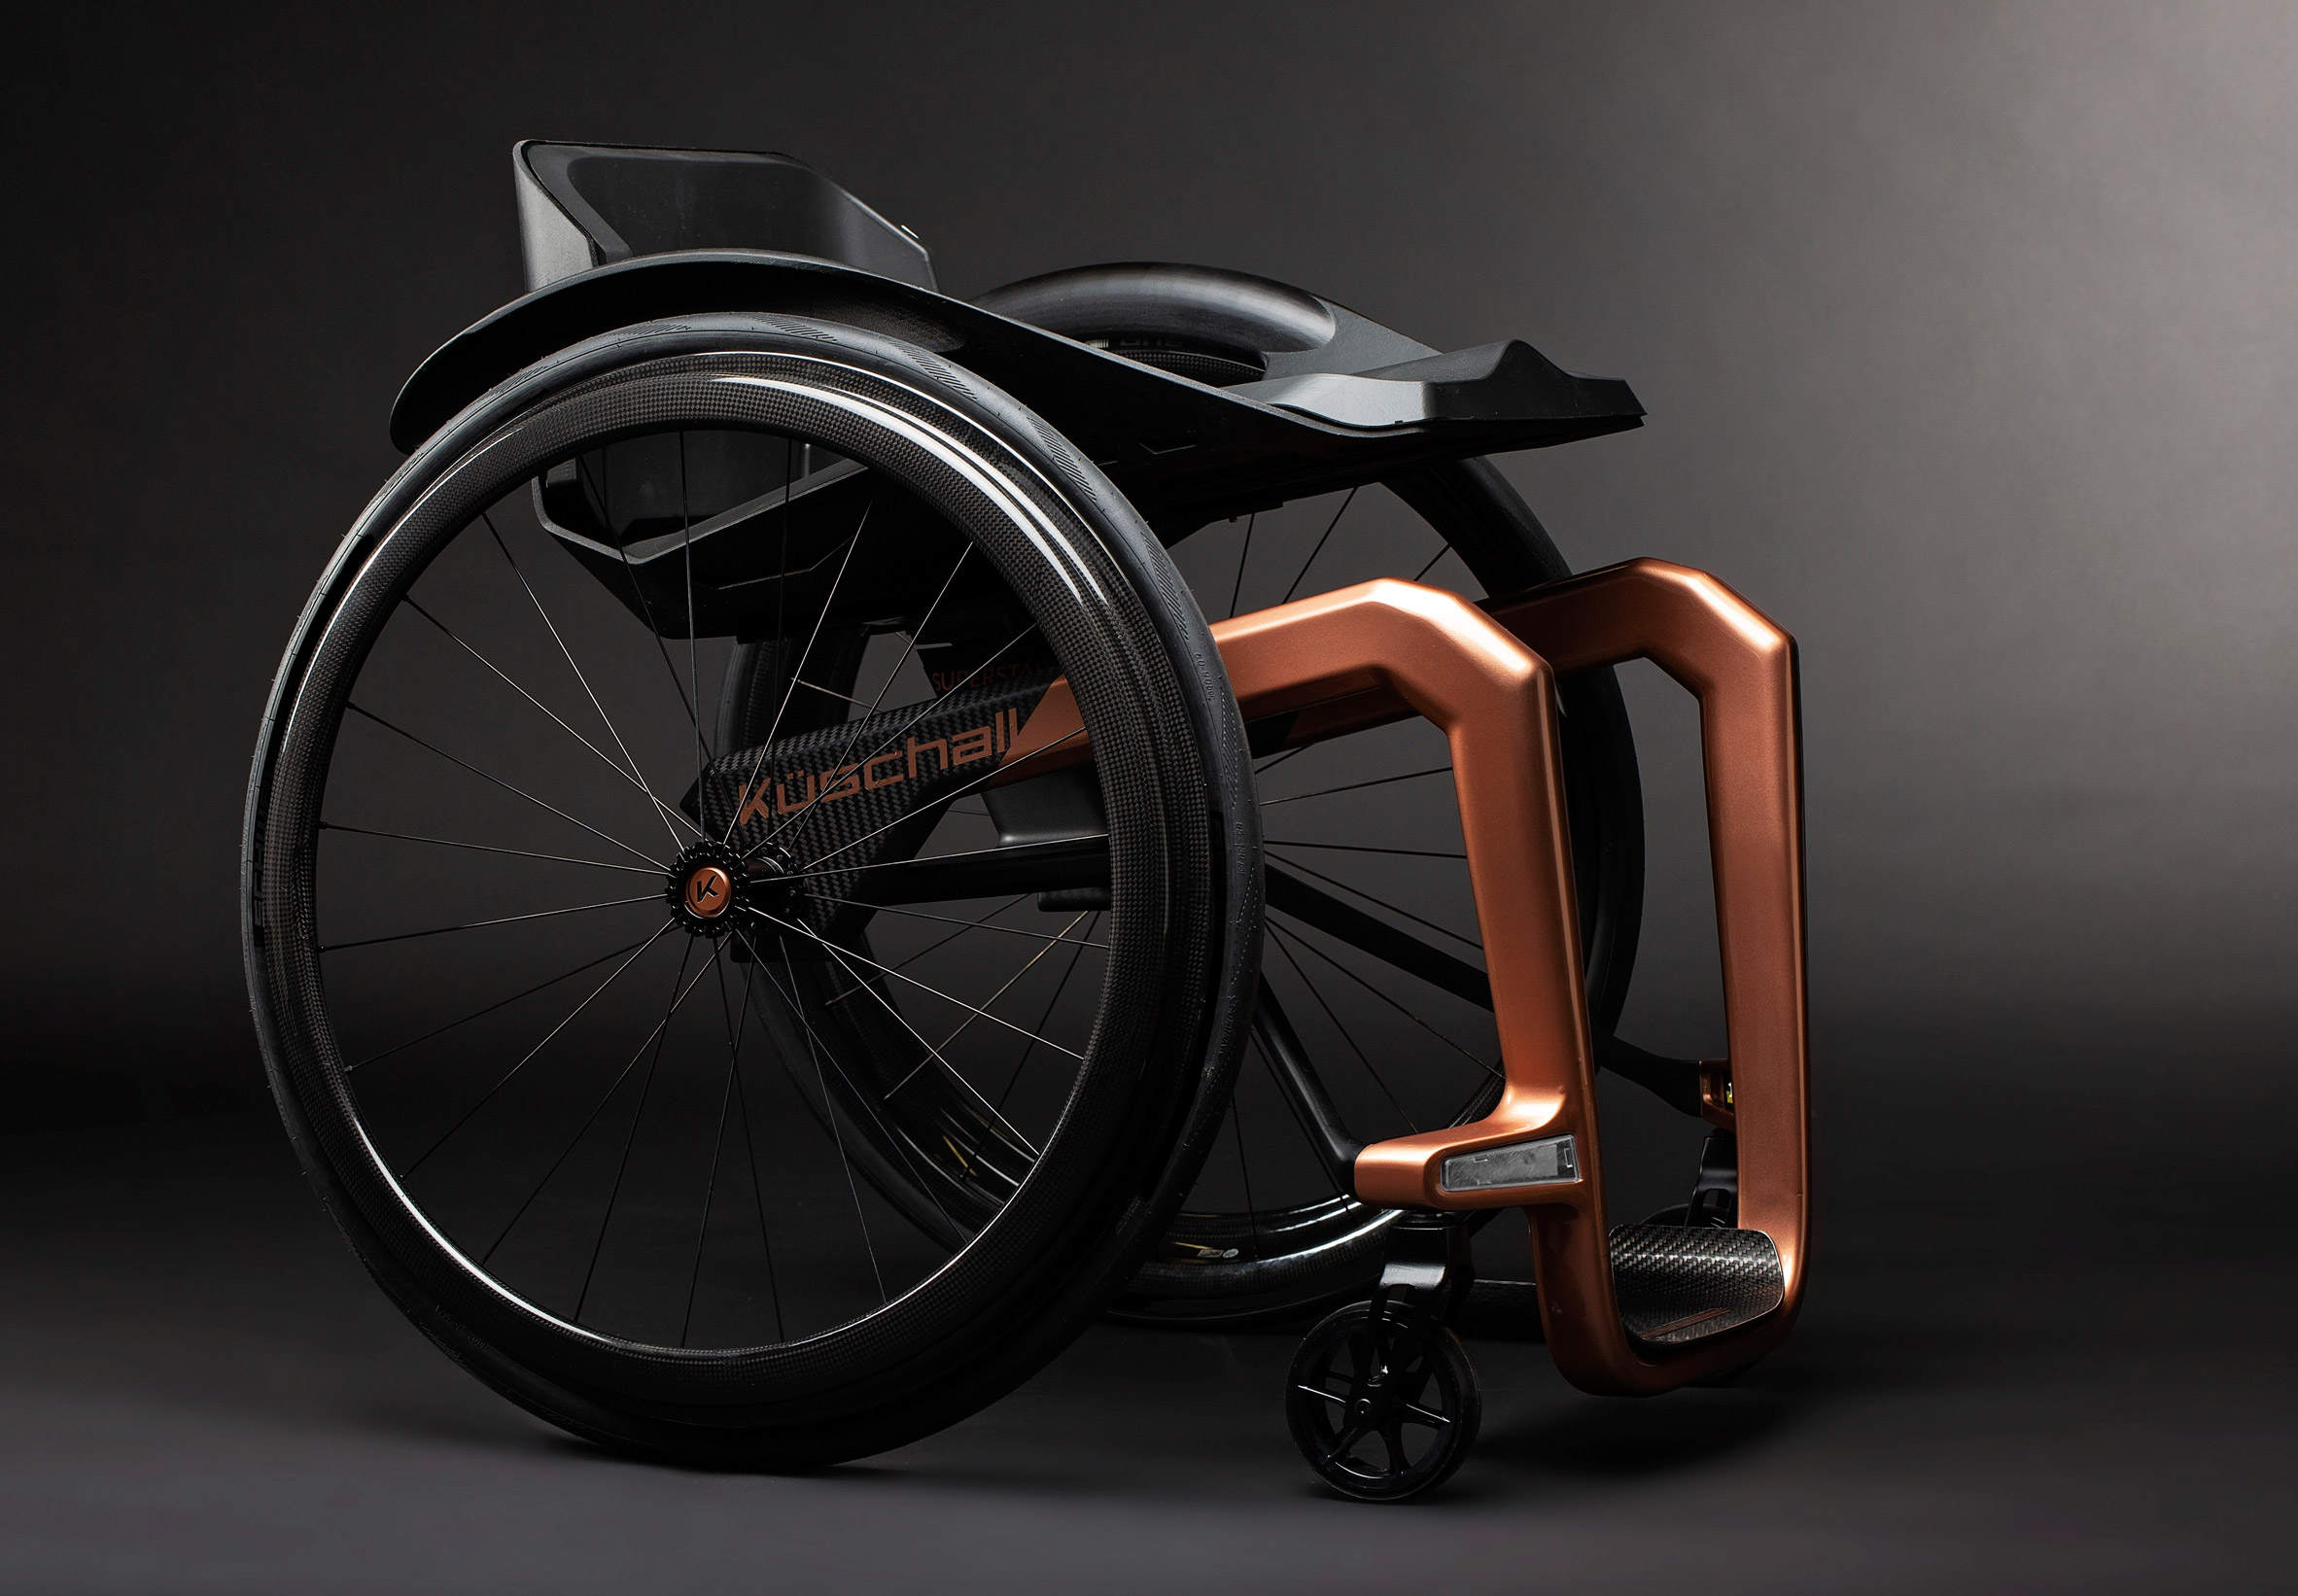 Superstar is a graphene wheelchair that promises strength